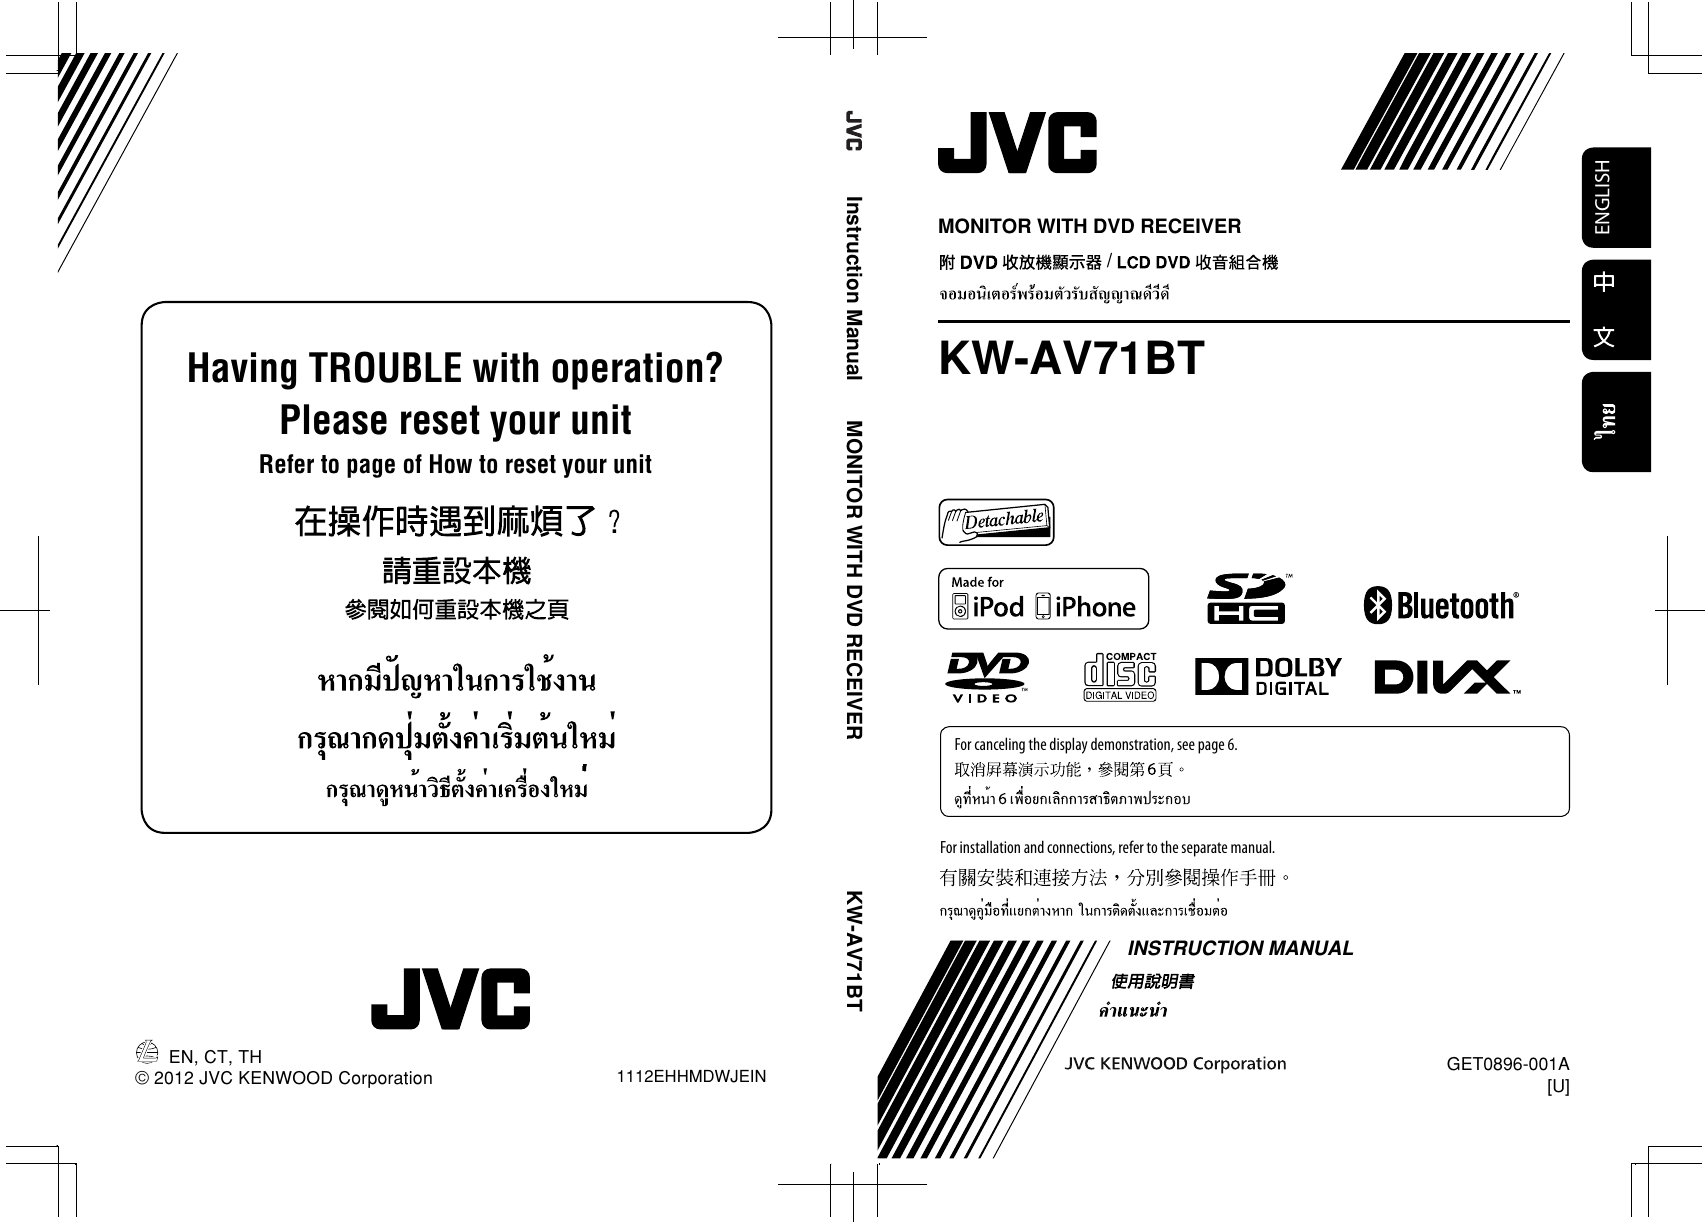 Jvc Kw Av71bt Wiring Diagram Electrical Diagrams Av60bt Av71btu User Manual Get0896 001a Car Stereo Dvd